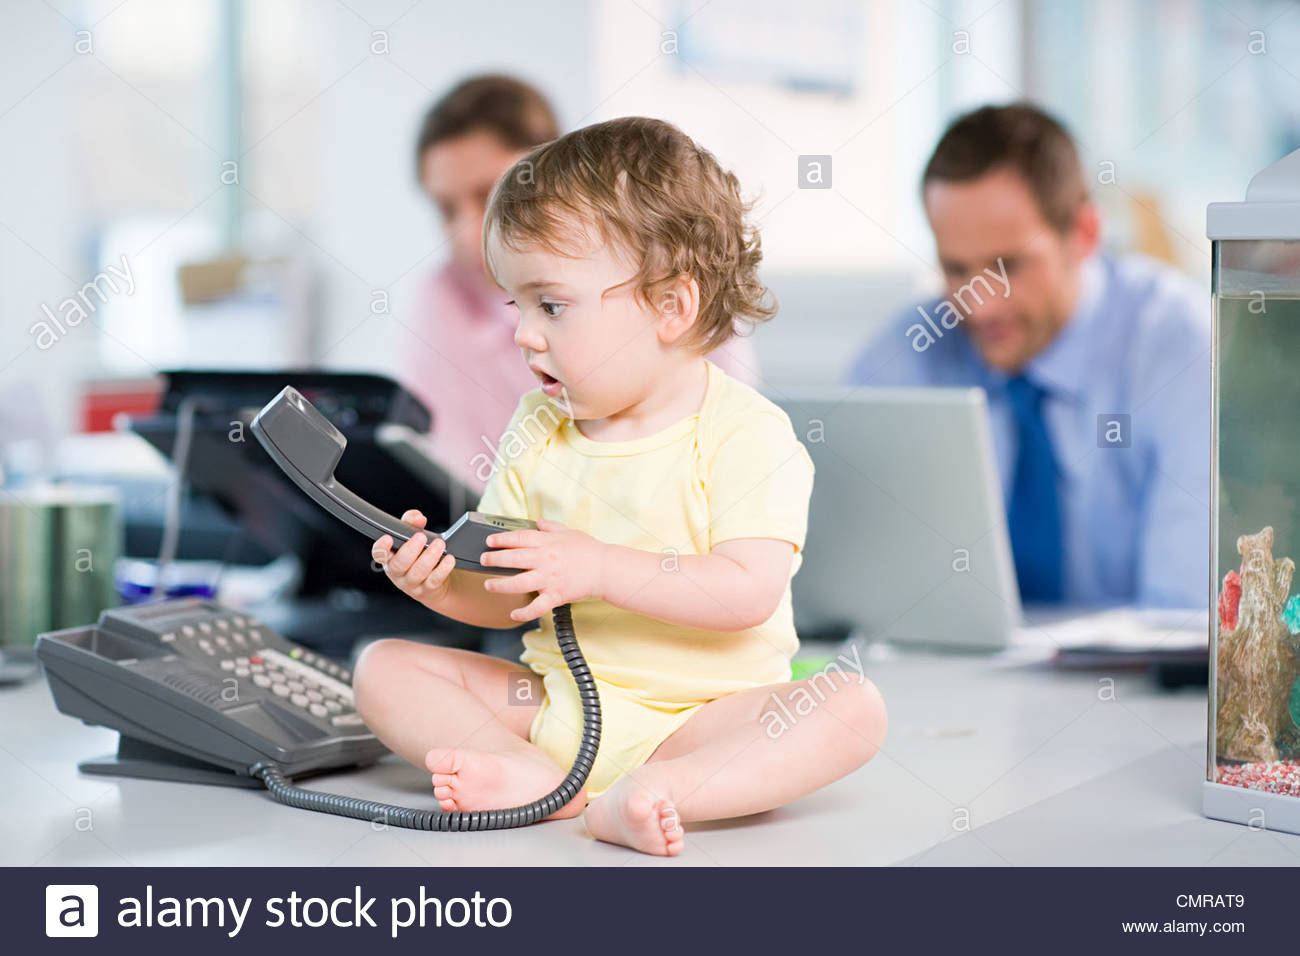 Baby with telephone - Stock Image